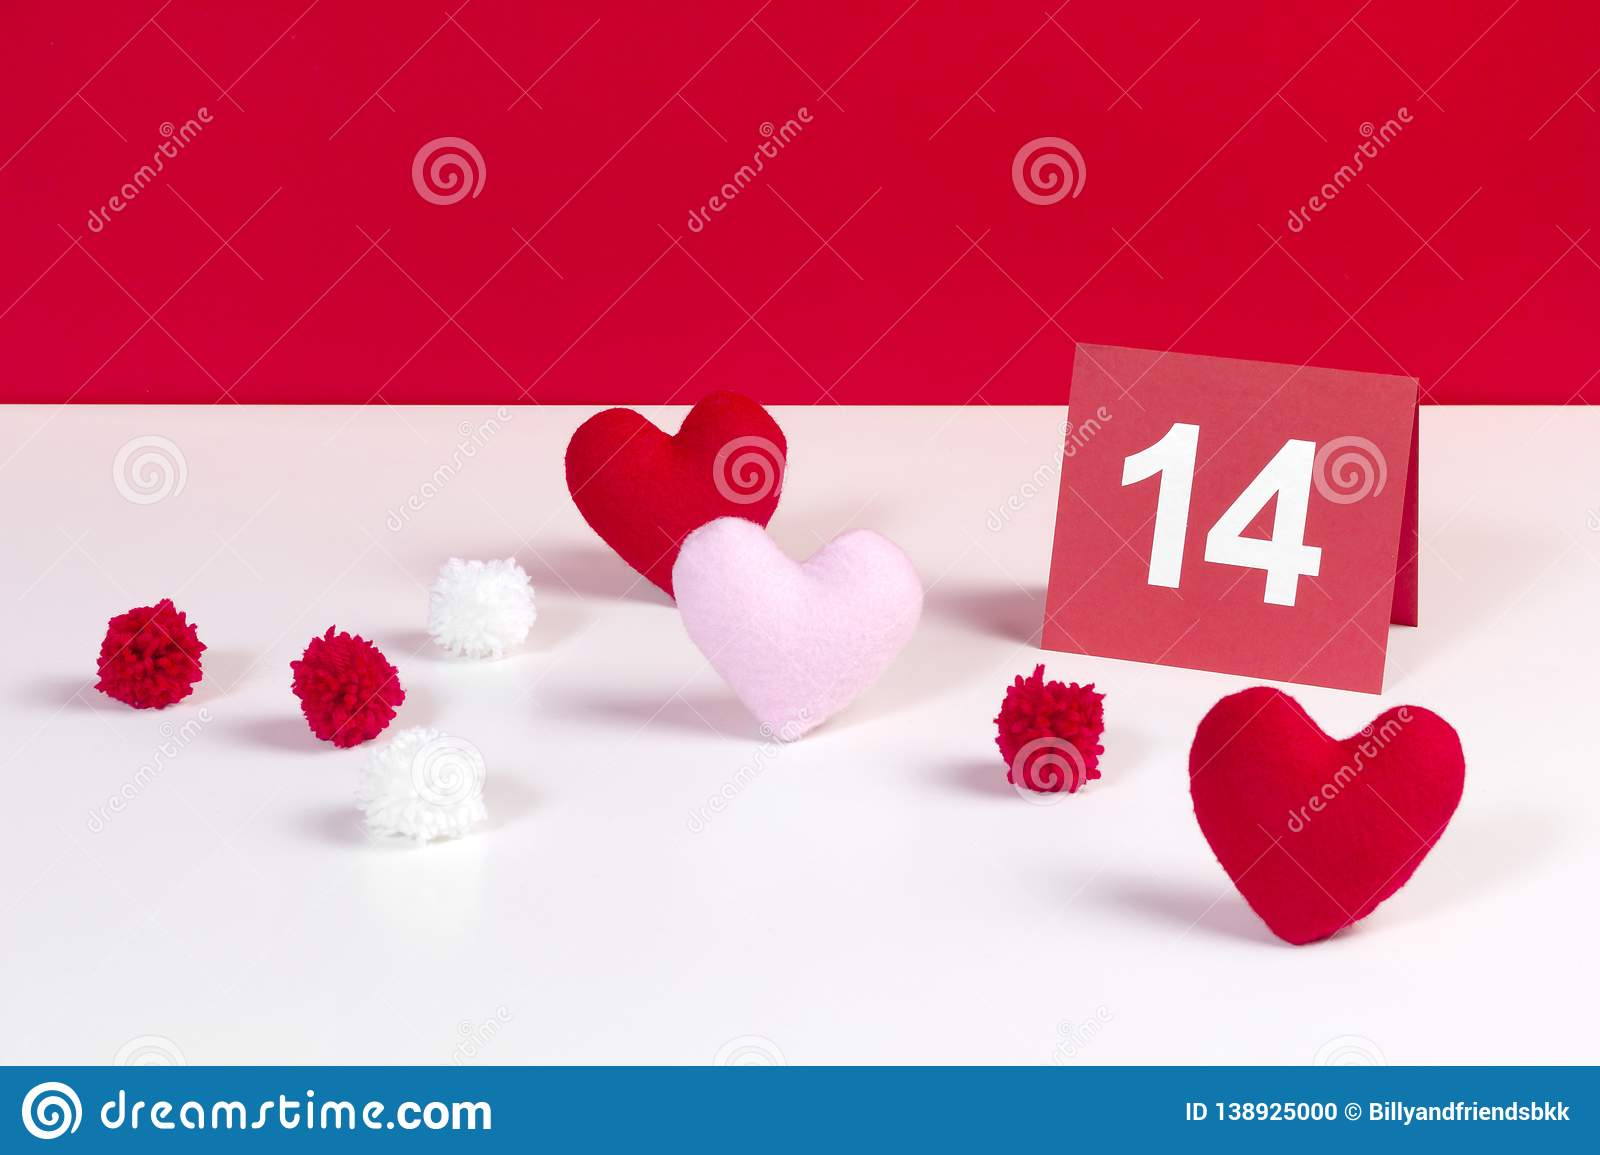 14 February Valentine`s Day red card concept decorated with heart shaped fabrics and pom pom on red and white background